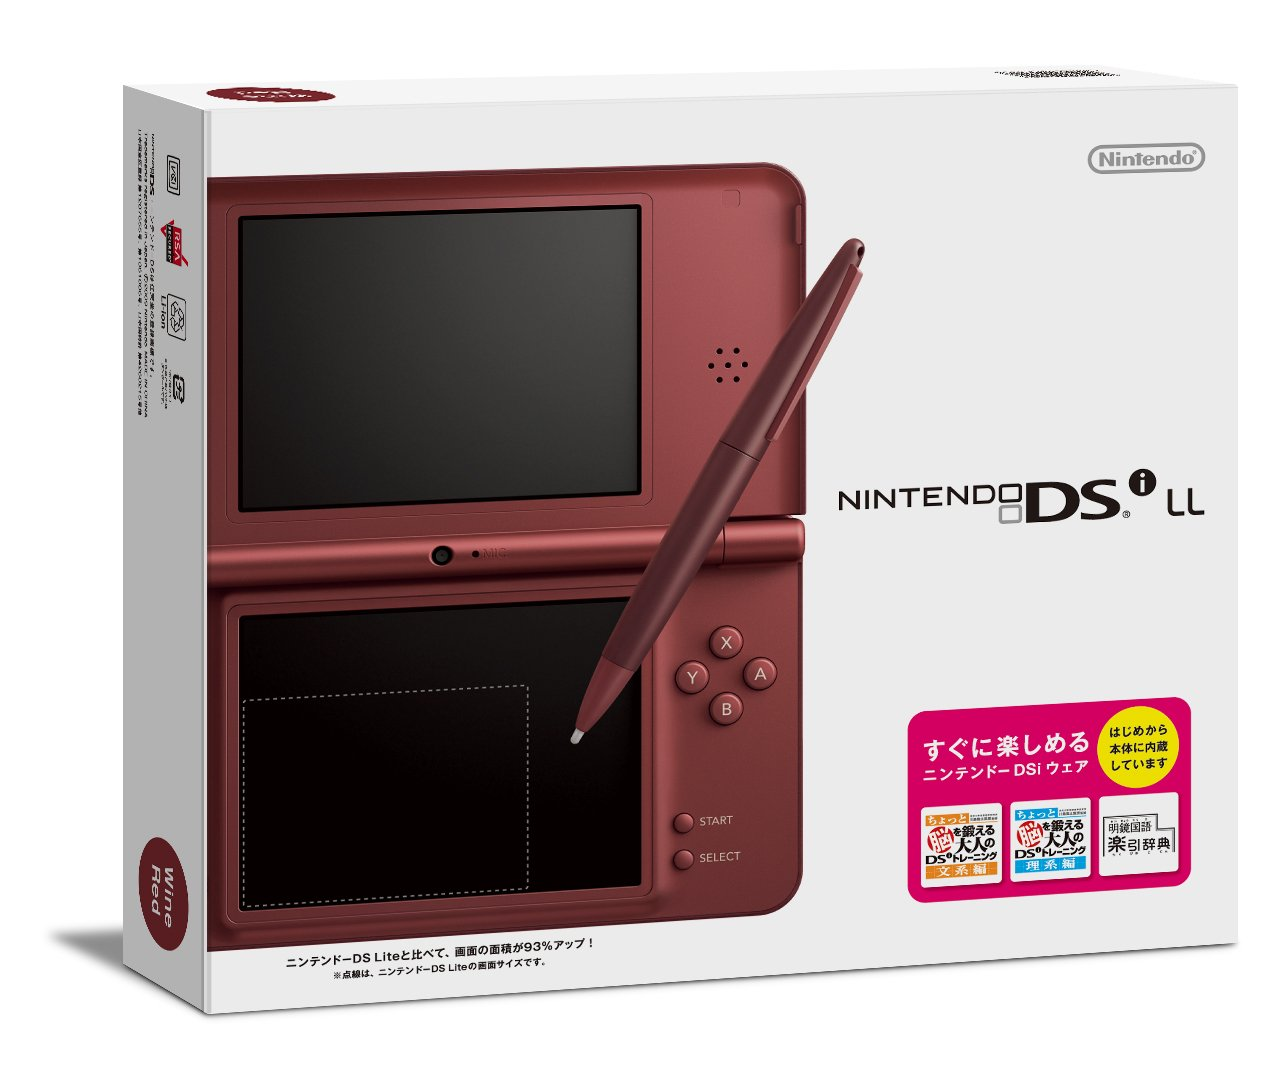 Nintendo DSi LL Portable Video Game Console - Wine Red - Japanese Version (only plays Japanese version DSi games) by Nintendo (Image #1)